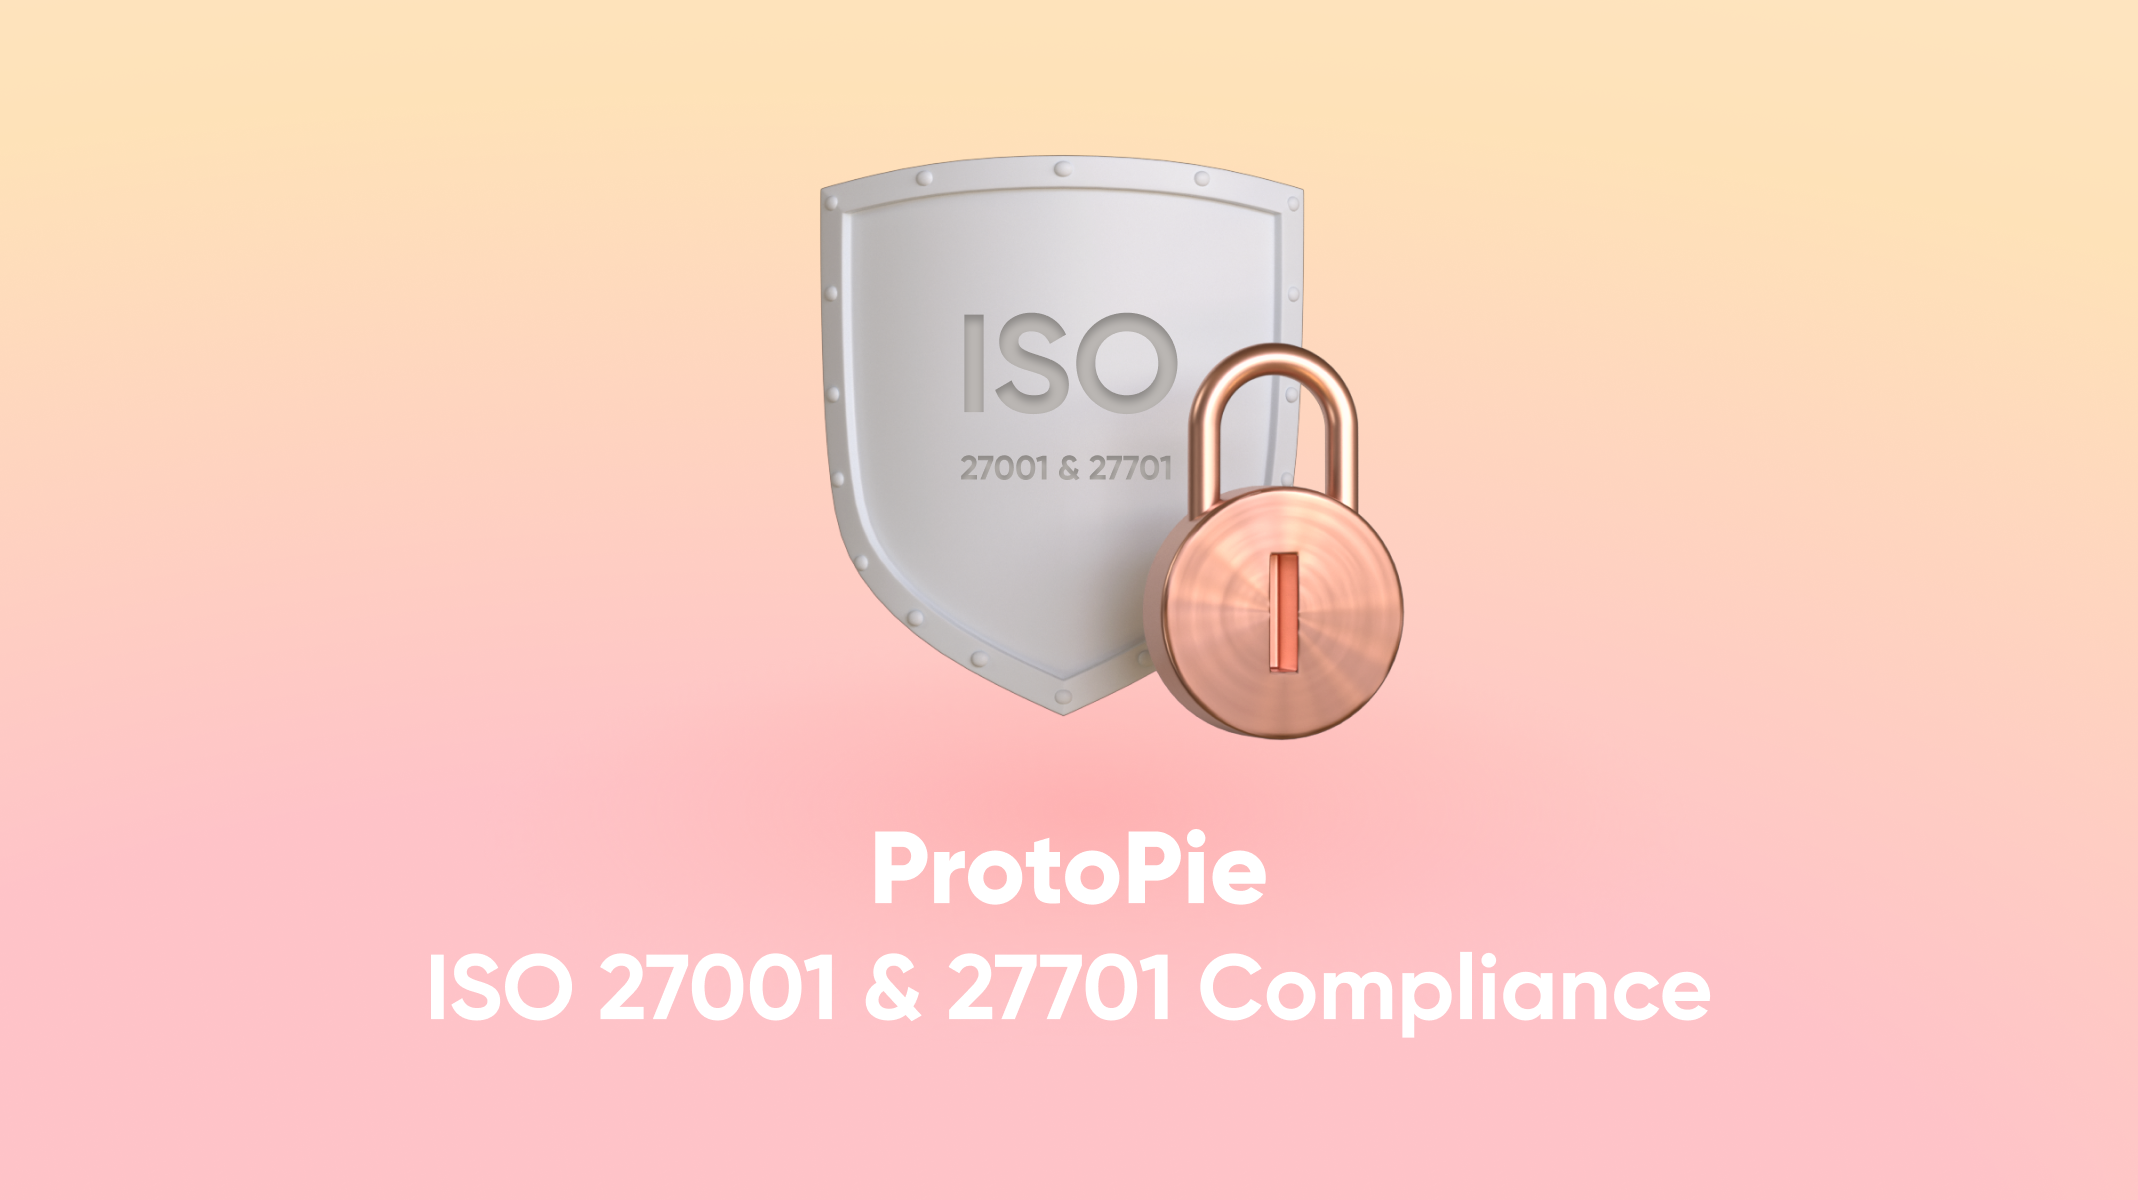 ProtoPie and ISO compliance article thumbnail